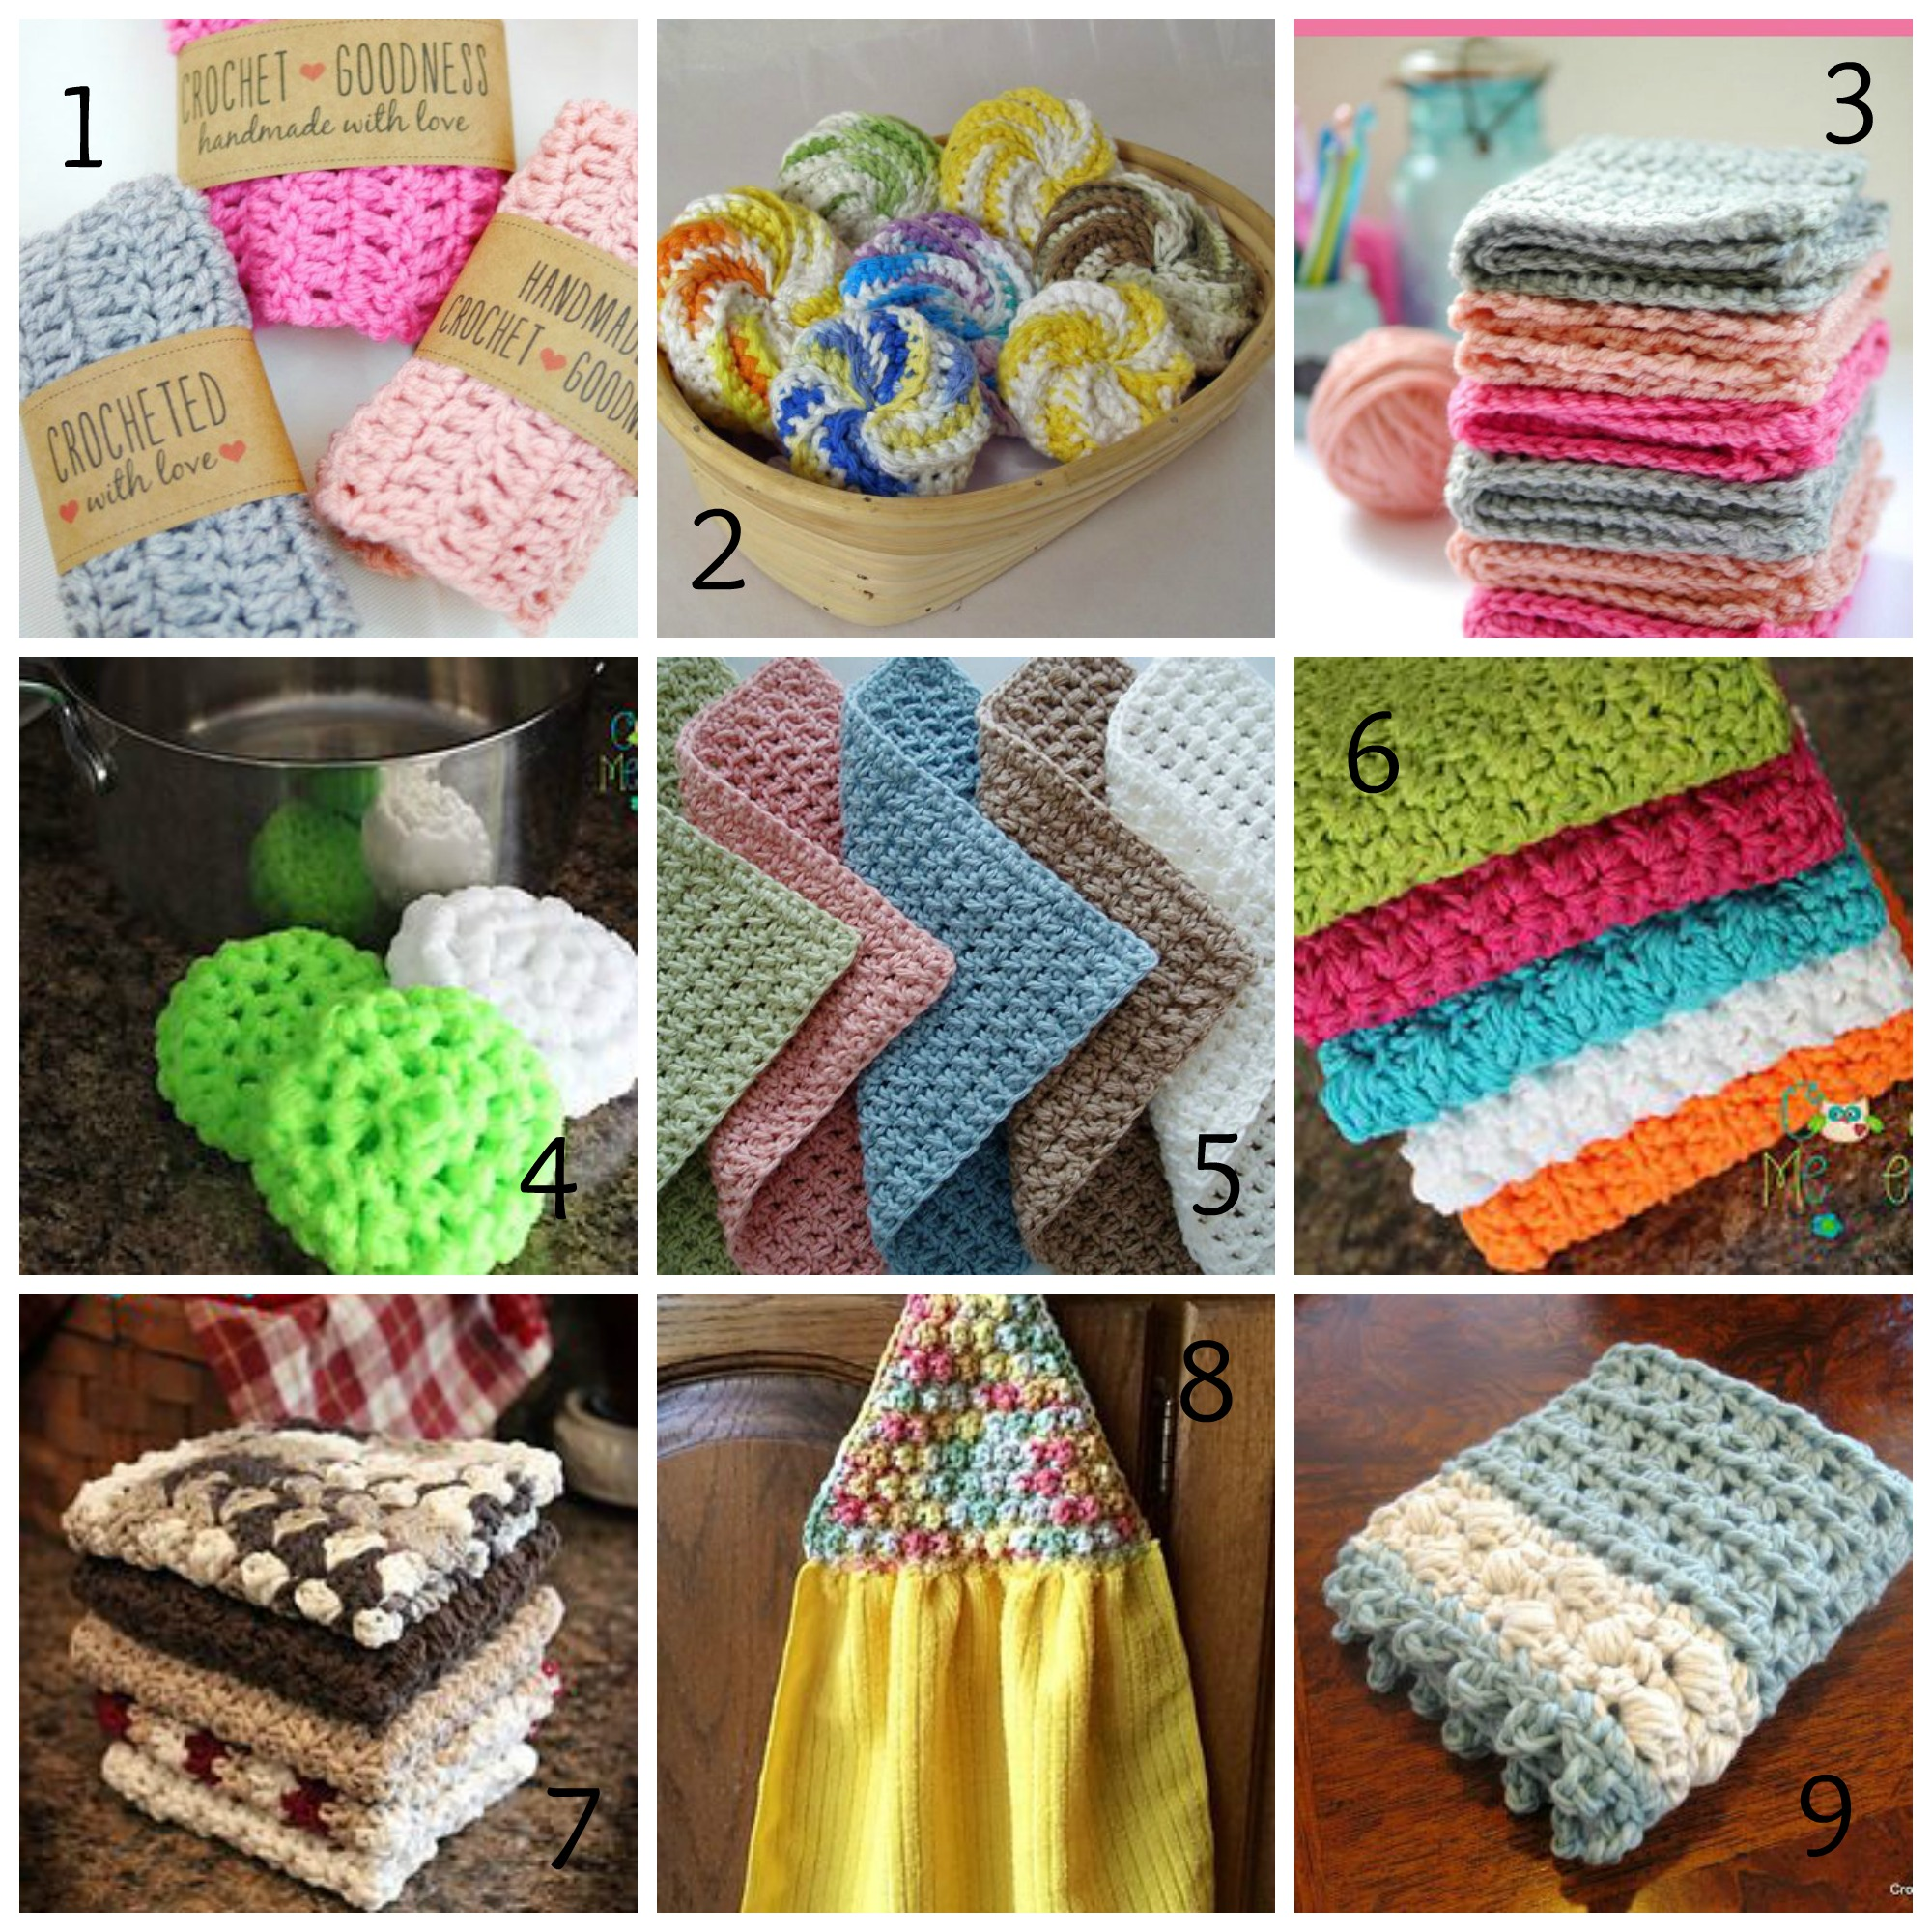 Washcloth, Tawashi & Dishcloth Patterns Roundup - Ambassador Crochet